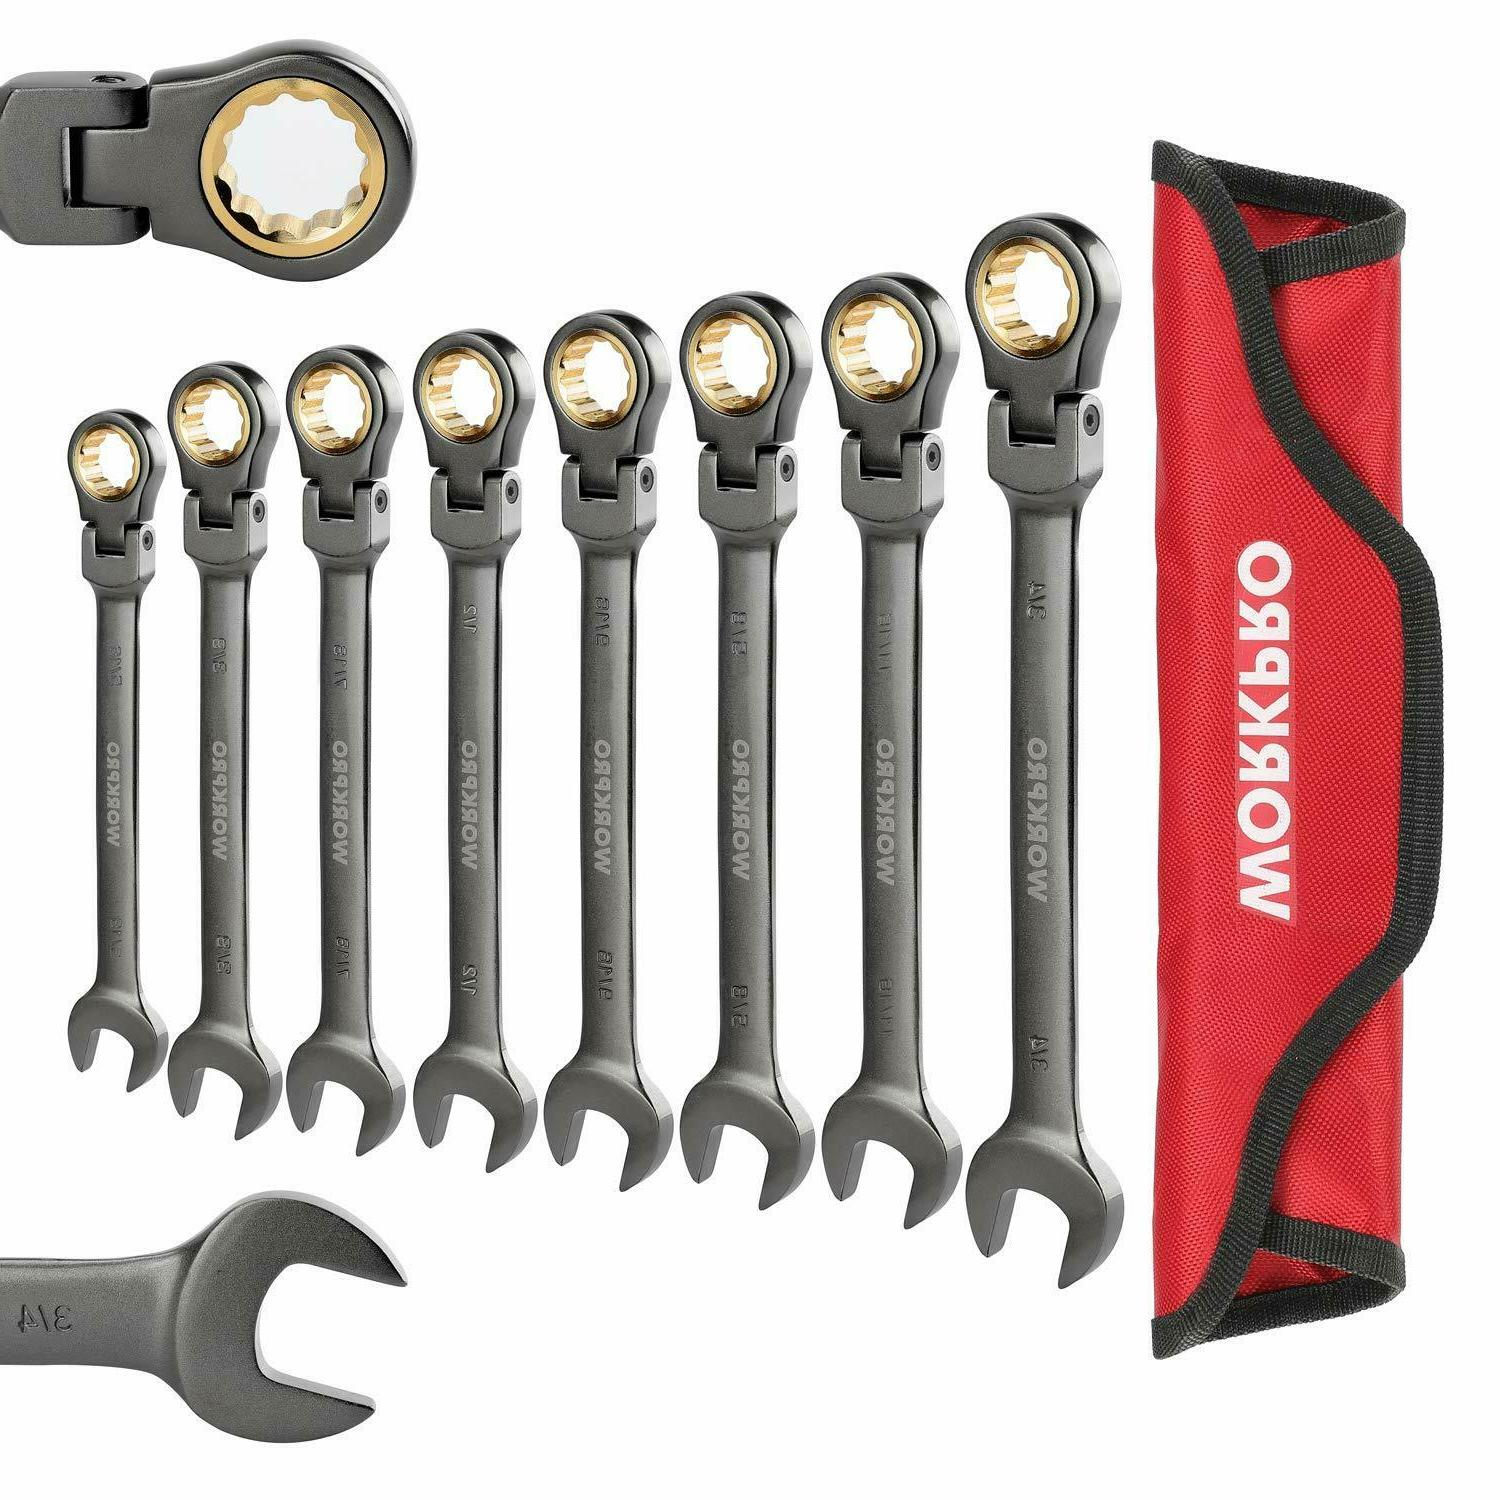 8 piece flex head ratcheting combination wrench